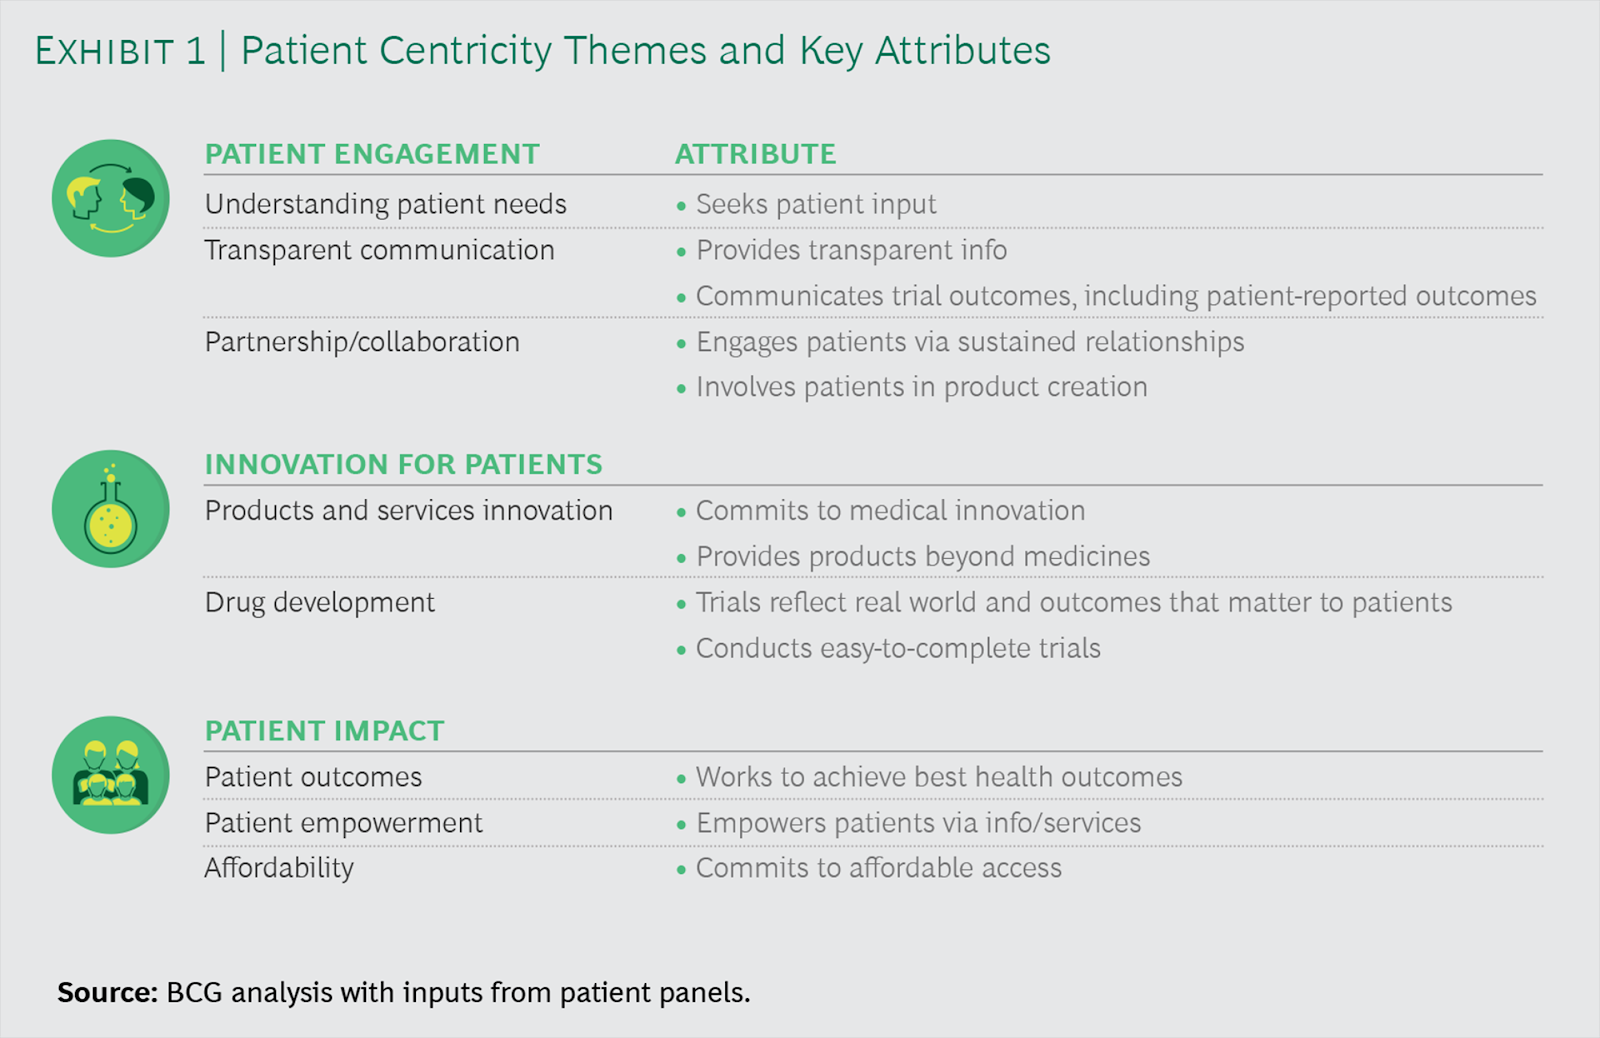 BCG assessment of patient centricity